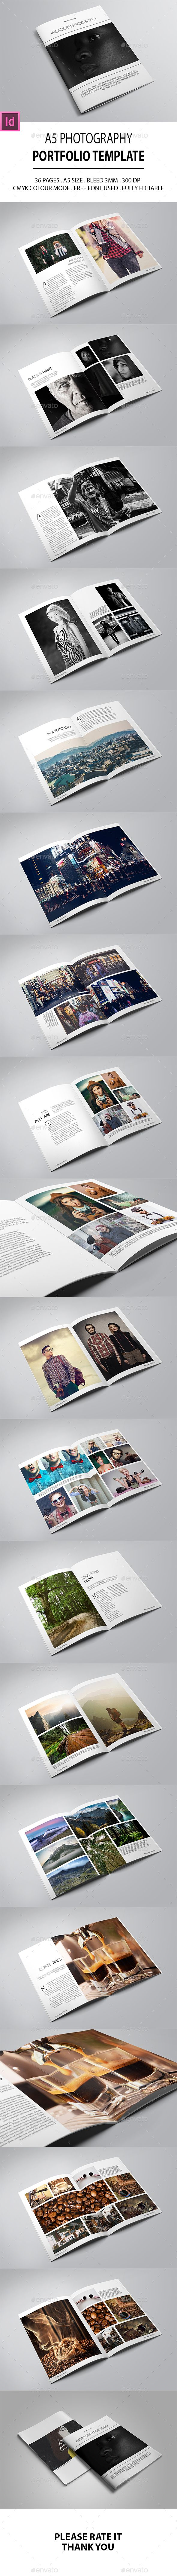 A5 Photography Portfolio Design Template - Photo Albums Print Templates InDesign INDD. Download here: https://graphicriver.net/item/a5-photography-portfolio/17021671?s_rank=12&ref=yinkira